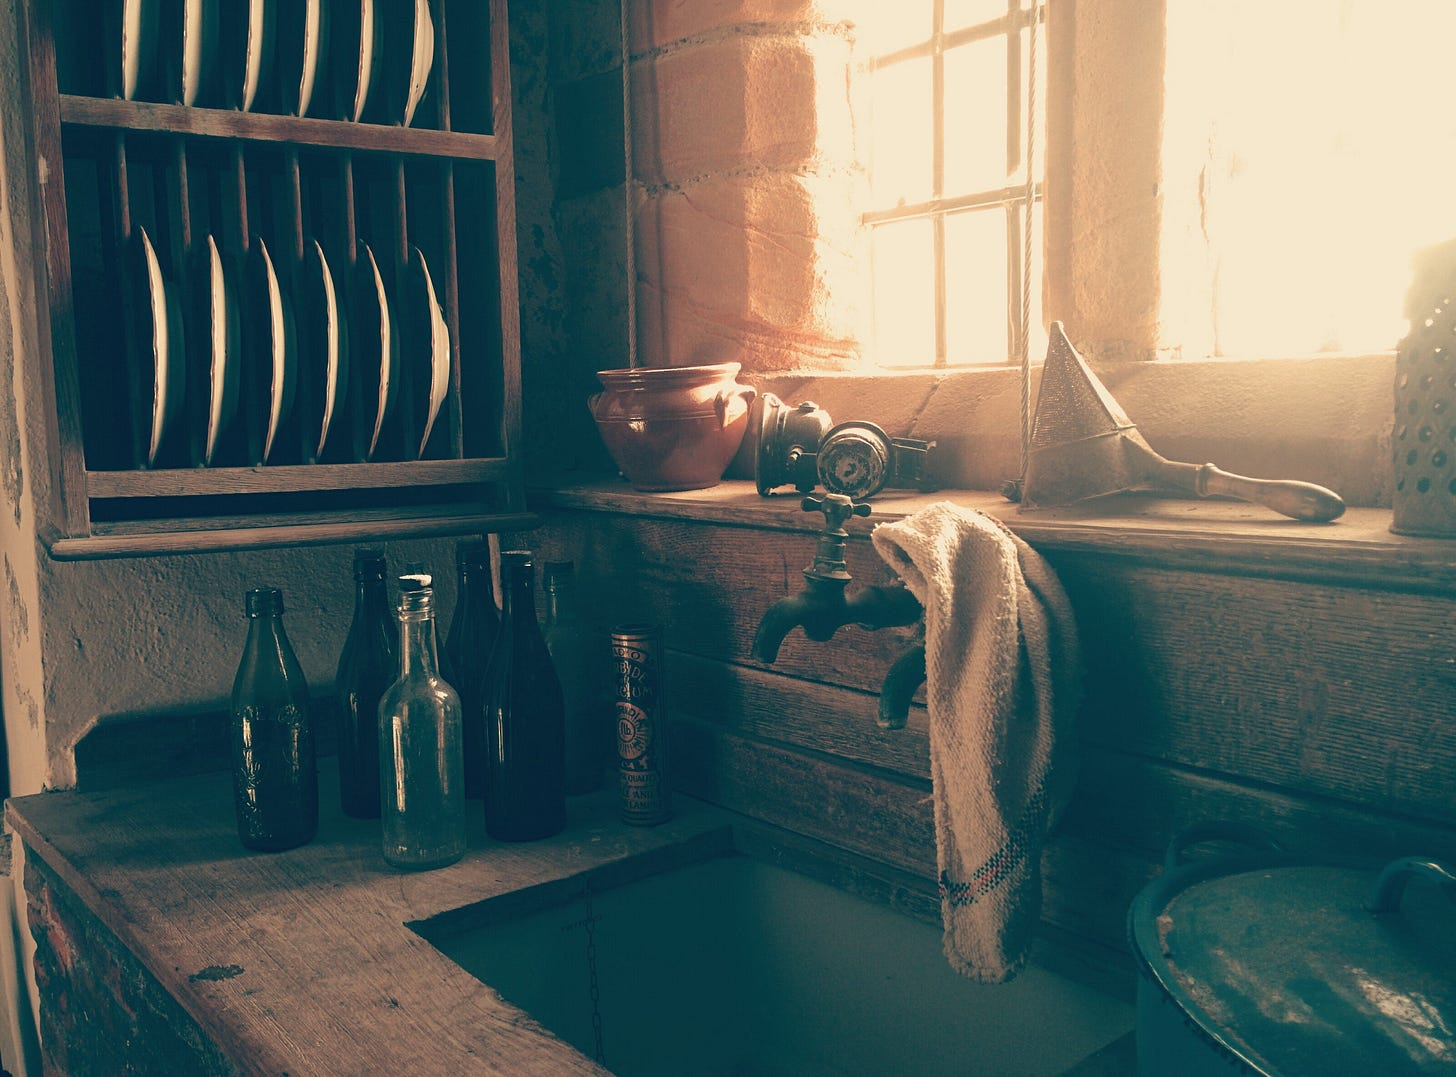 """image of an old kitchen sink for article titled """"My Dishwasher Anxiety"""""""